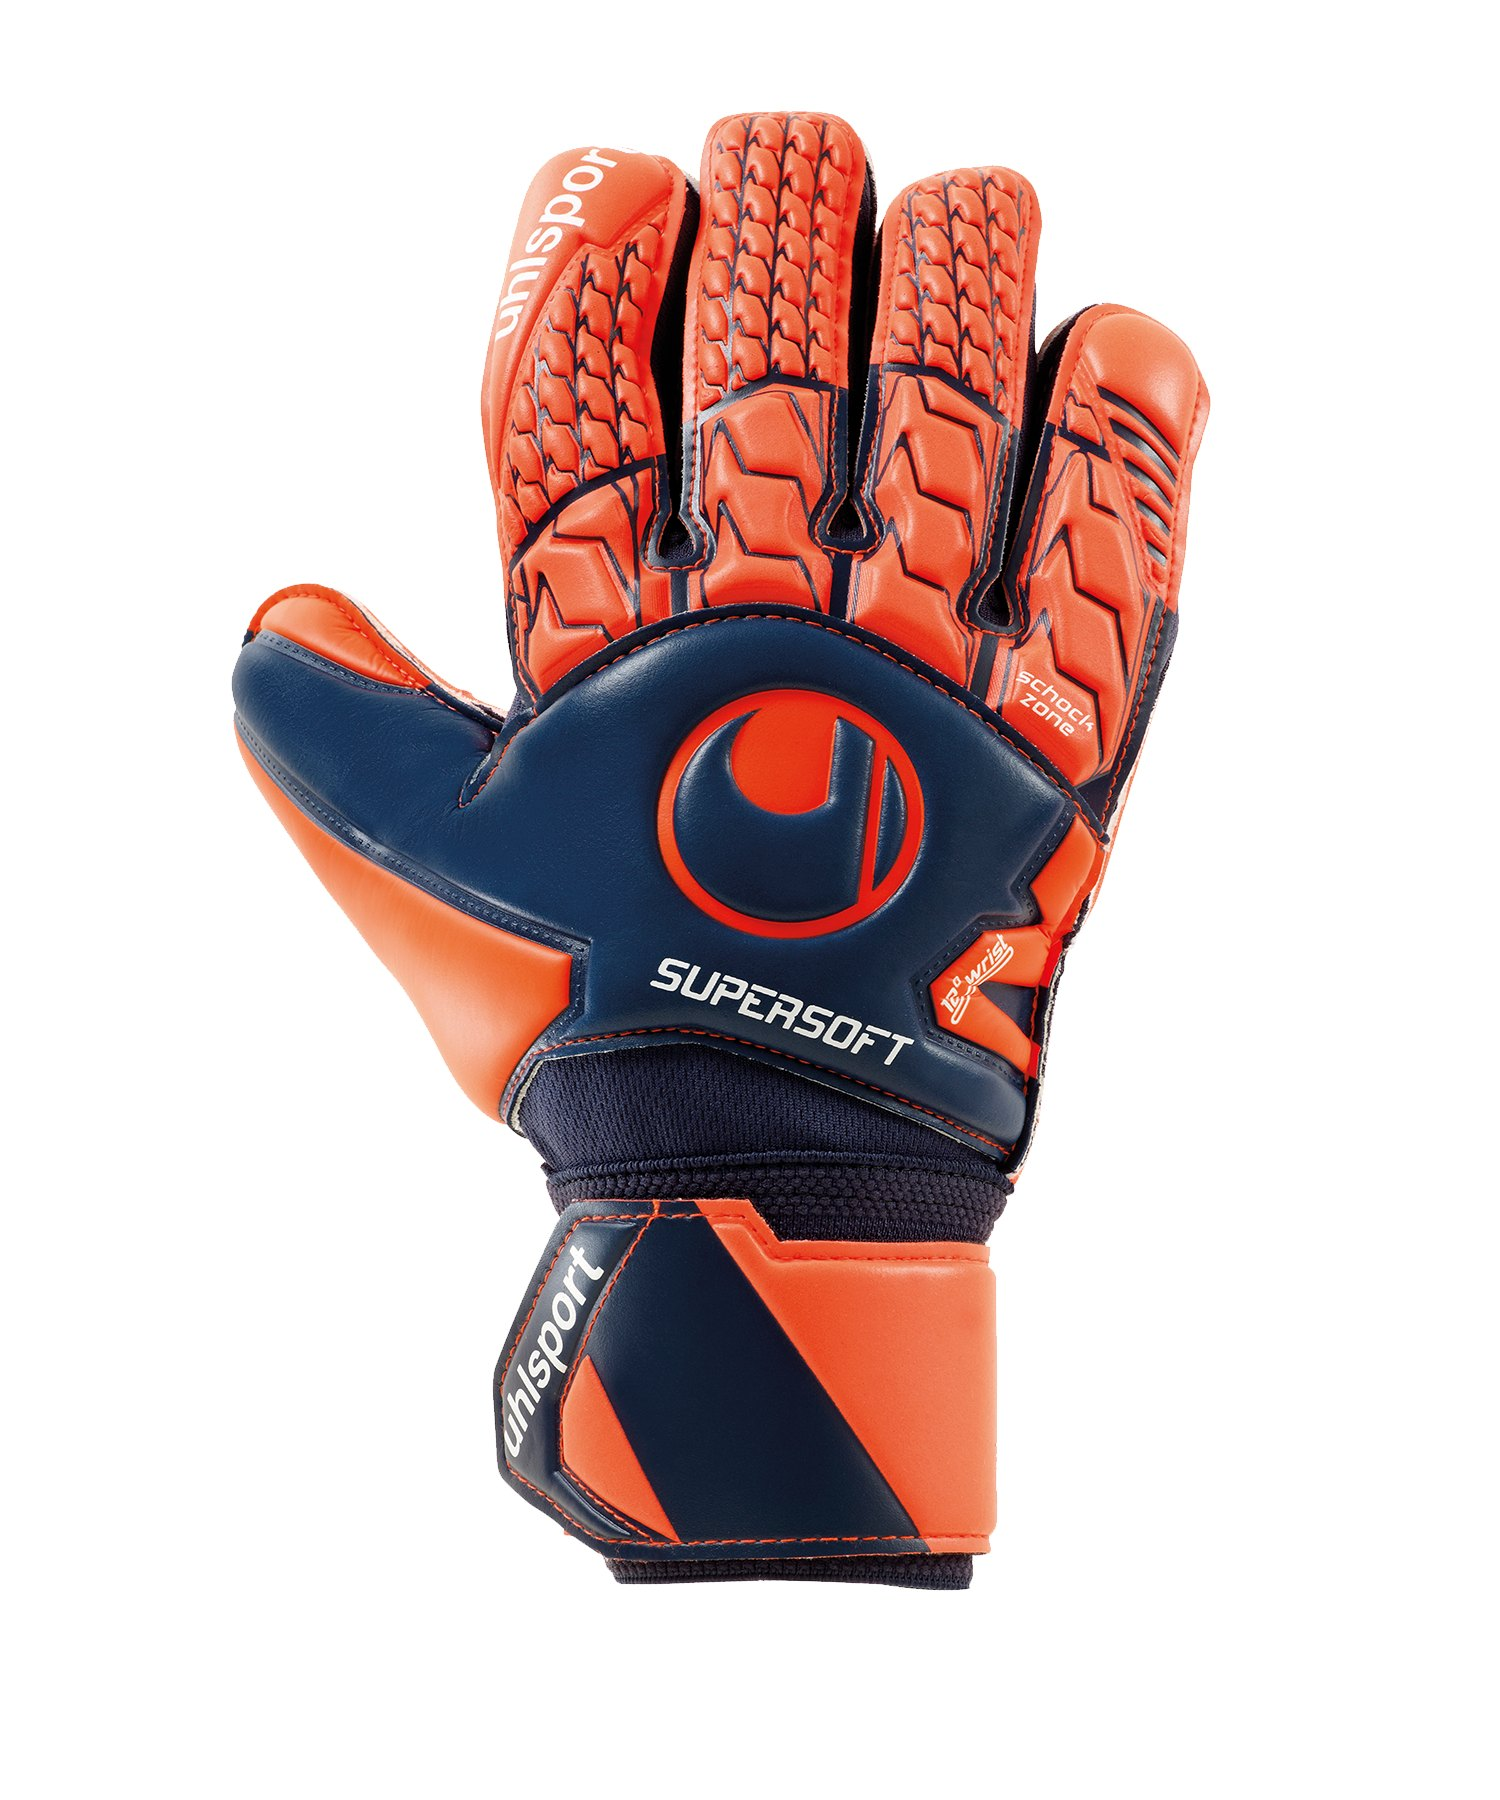 Uhlsport Next Level Supersoft Handschuh F01 - Blau